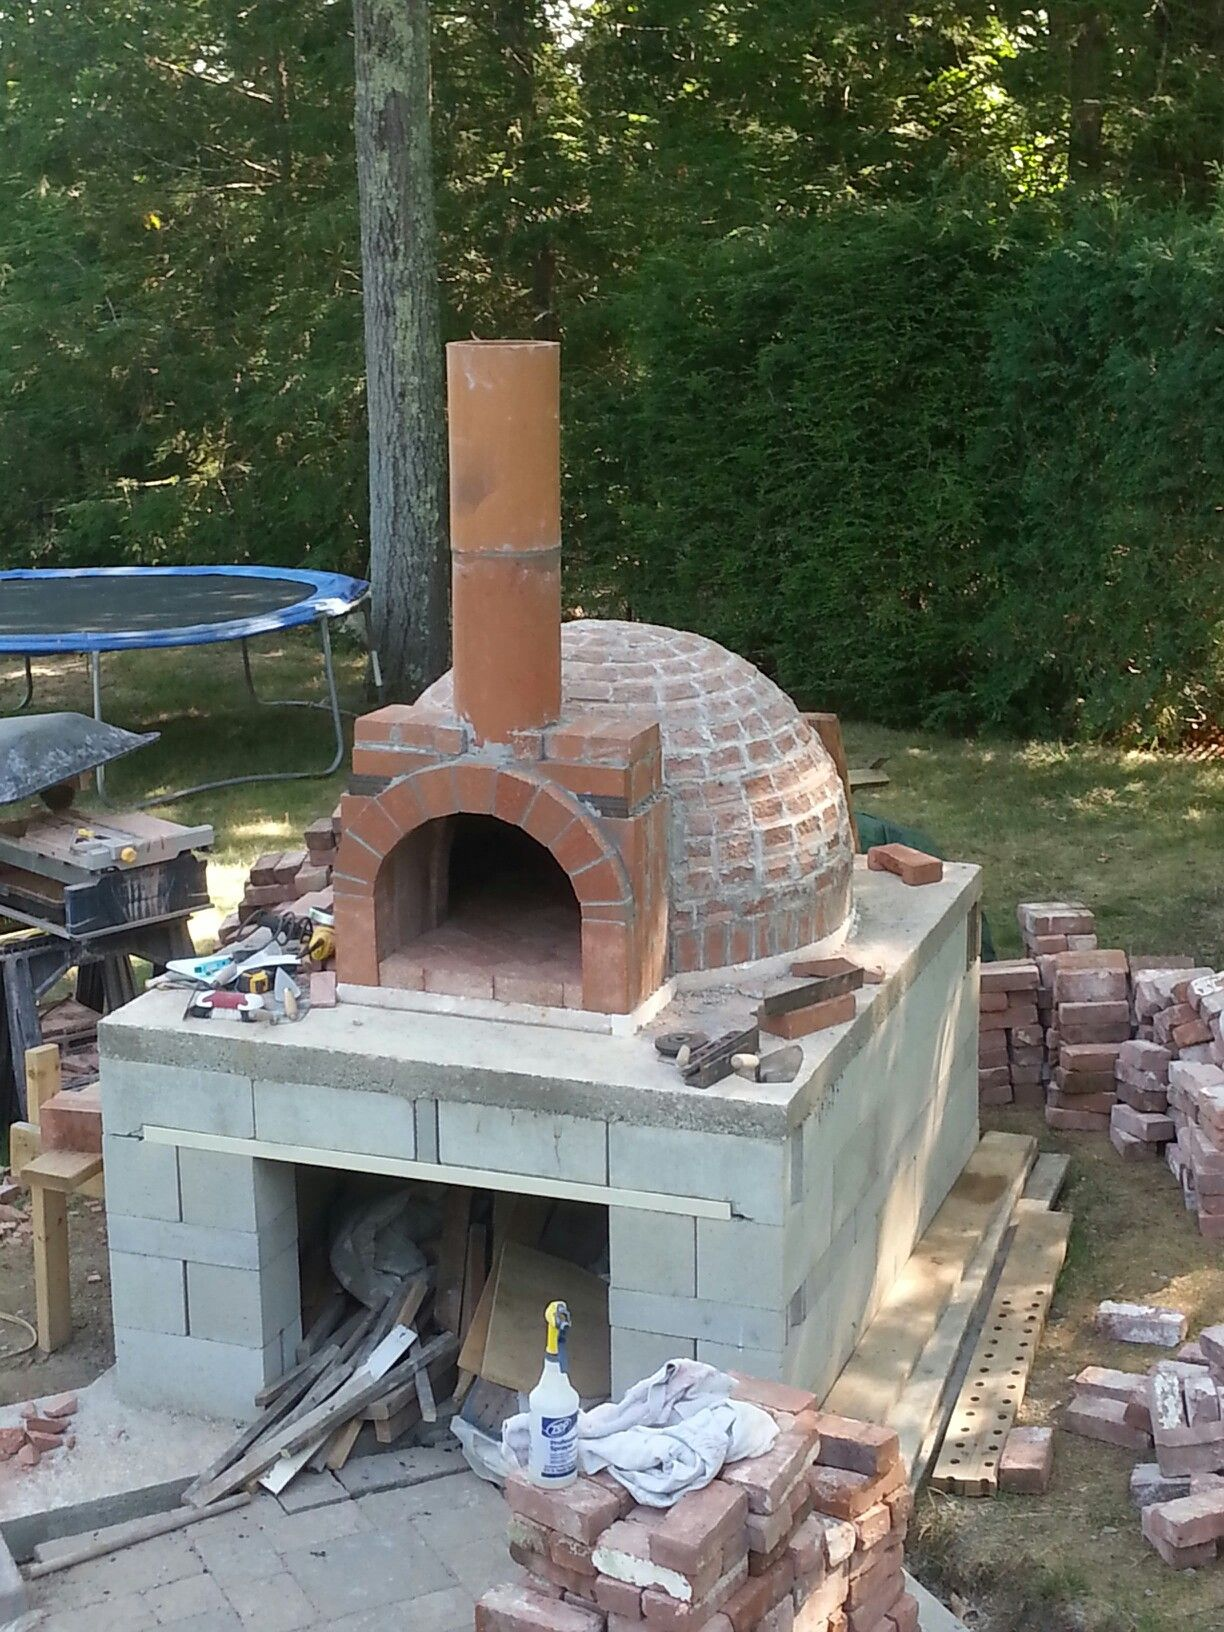 Add The Chimney And Entrance Outdoor Pizza Pizza Oven Outdoor